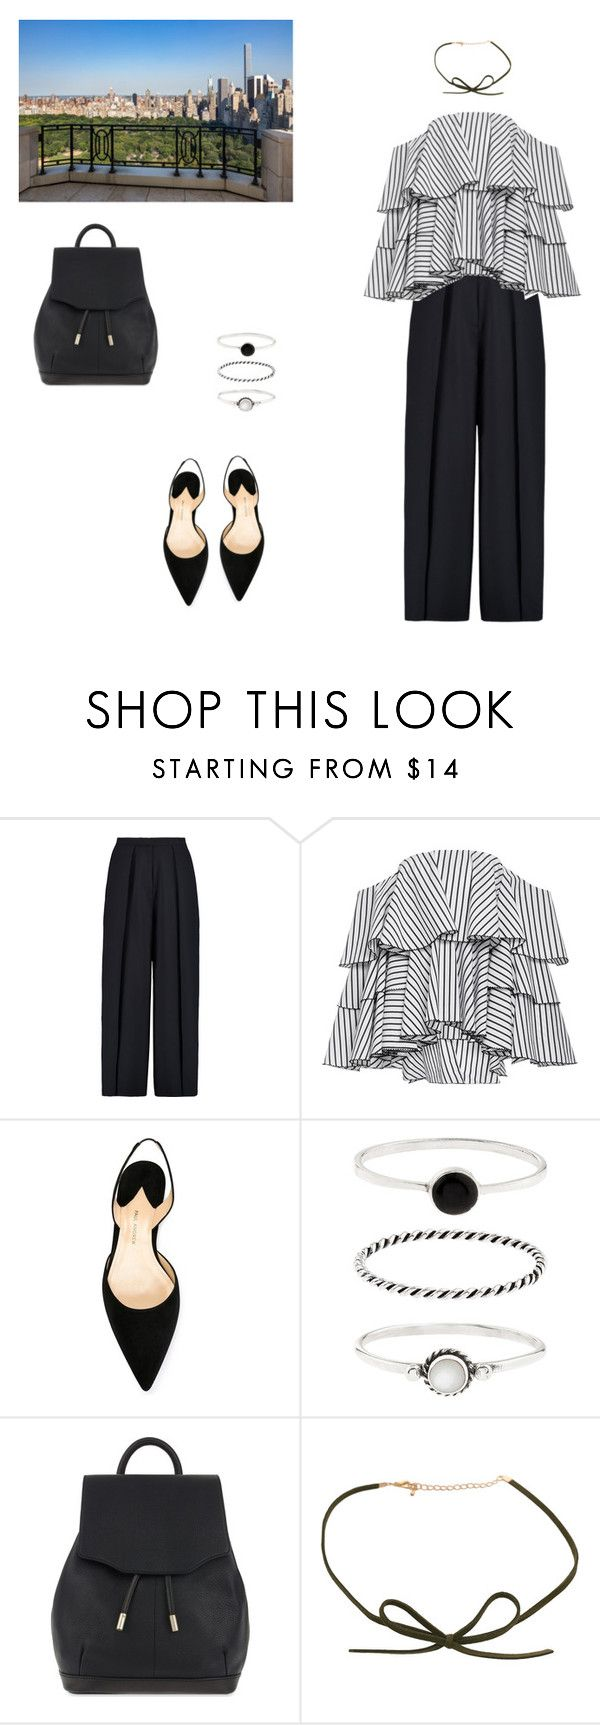 """Afternoon at New York"" by unicorntears01 ❤ liked on Polyvore featuring Iris & Ink, Caroline Constas, Paul Andrew, Accessorize and rag & bone"